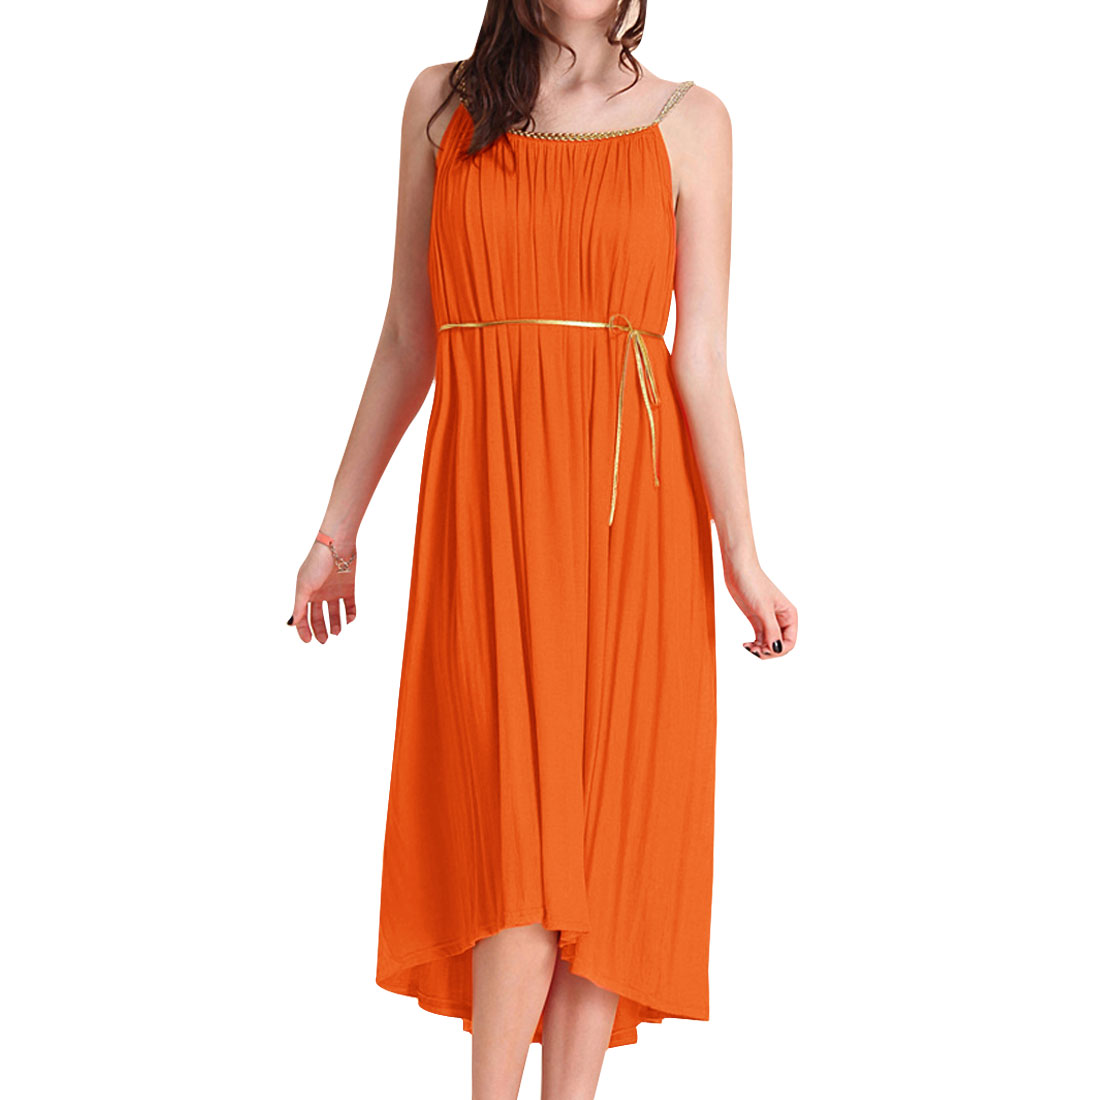 Lady Leisure Half Backless Orange Irregular Hem Long Dress M